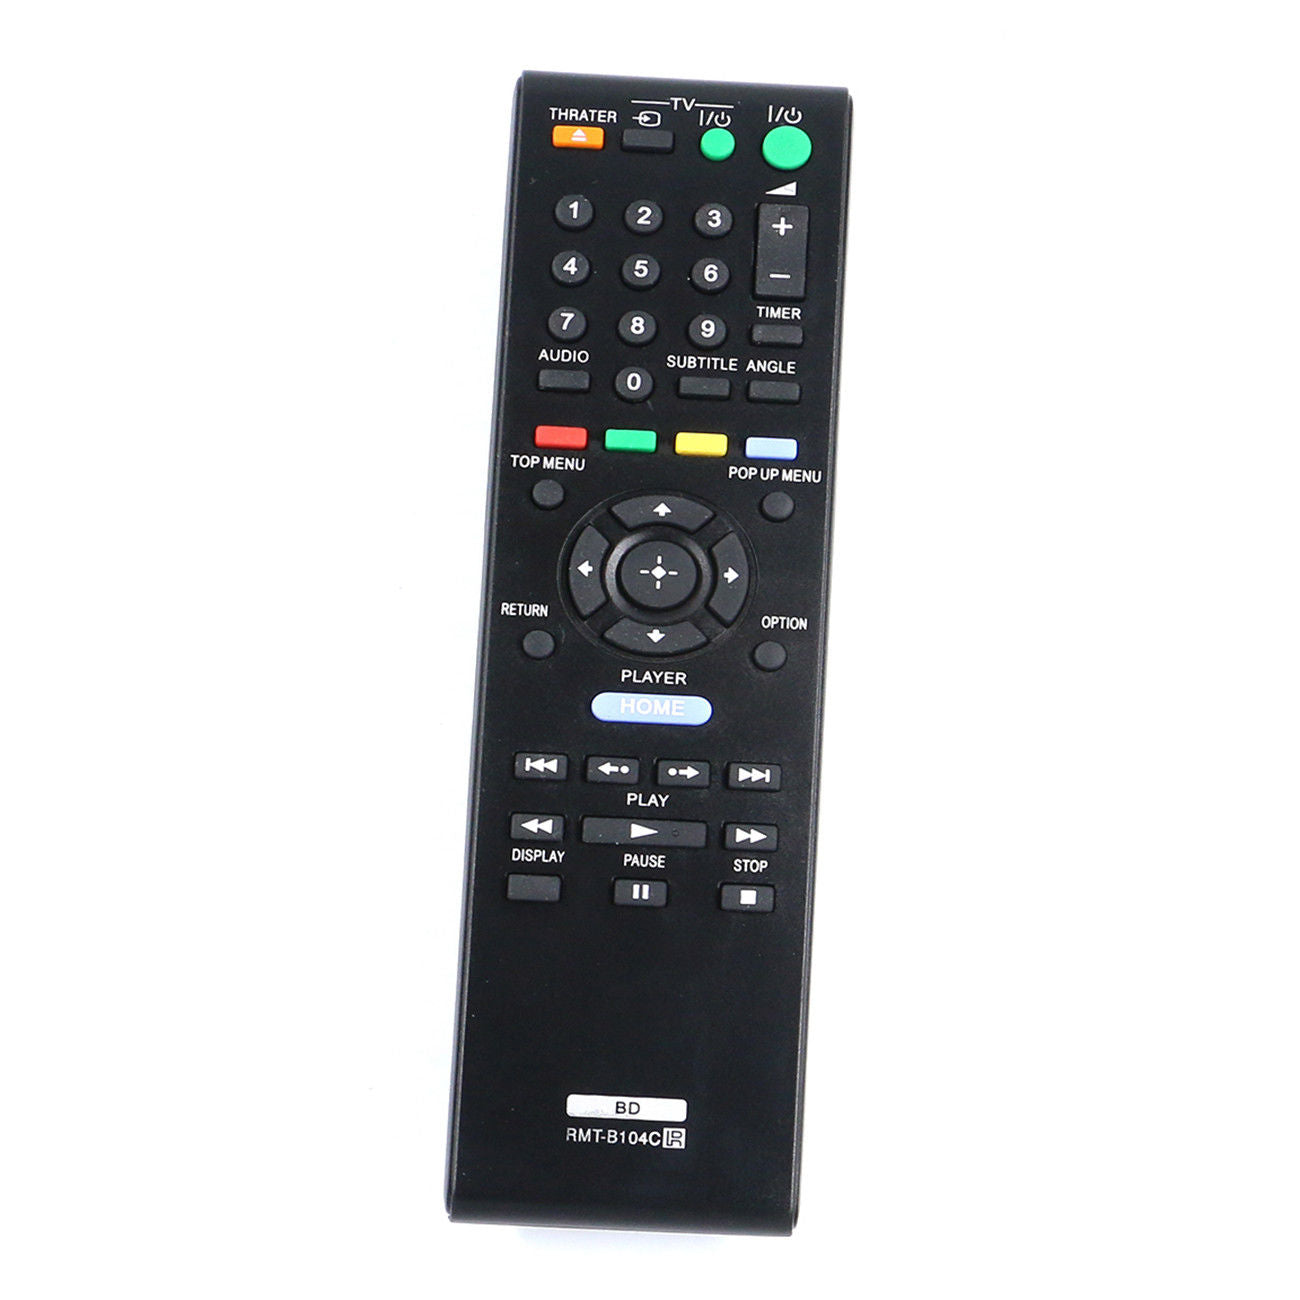 Generic Replacement Blu-ray Disc Player Bd Remote Control for Sony Rmt-b104c Rmt-b104p Bdp-s185 Bdp-s190 Bdp-s270 Bdp-s300 Bdp-s350 Bdp-s360 Bdp-s370 Bdp-s380 Bdp-s470 Bdp-s480 Bdp-s490 Bdp-s495 Bdp-s550 Bdp-s560 Bdp-s570 Bdp-s580 Bdp-s780 Bdp-s360hp Bdp-s